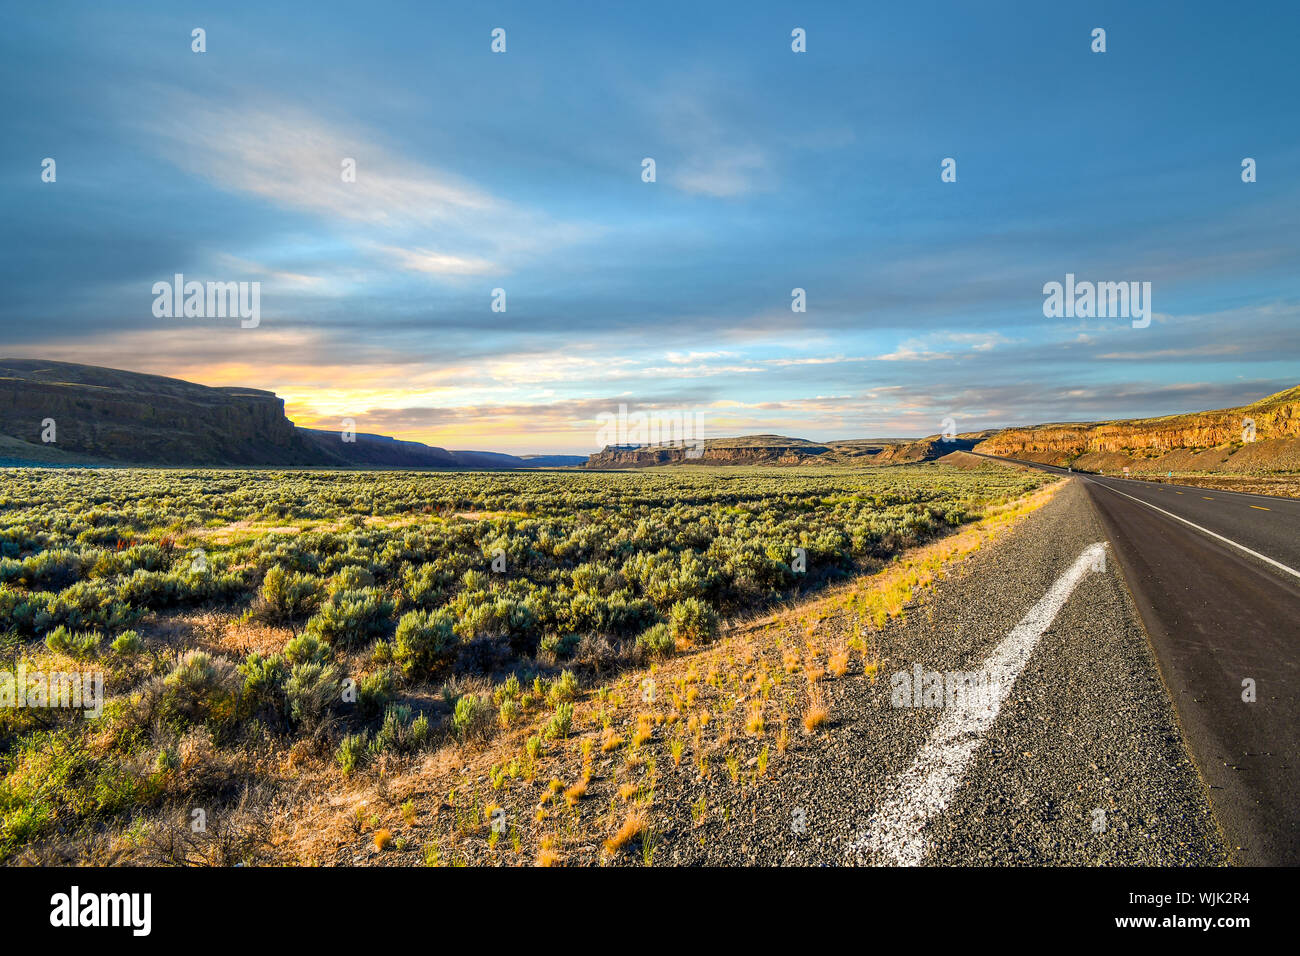 Long road winding though the flat desert brush land into the mountains of the Inland Northwest of rural Washington State in the American Desert Stock Photo